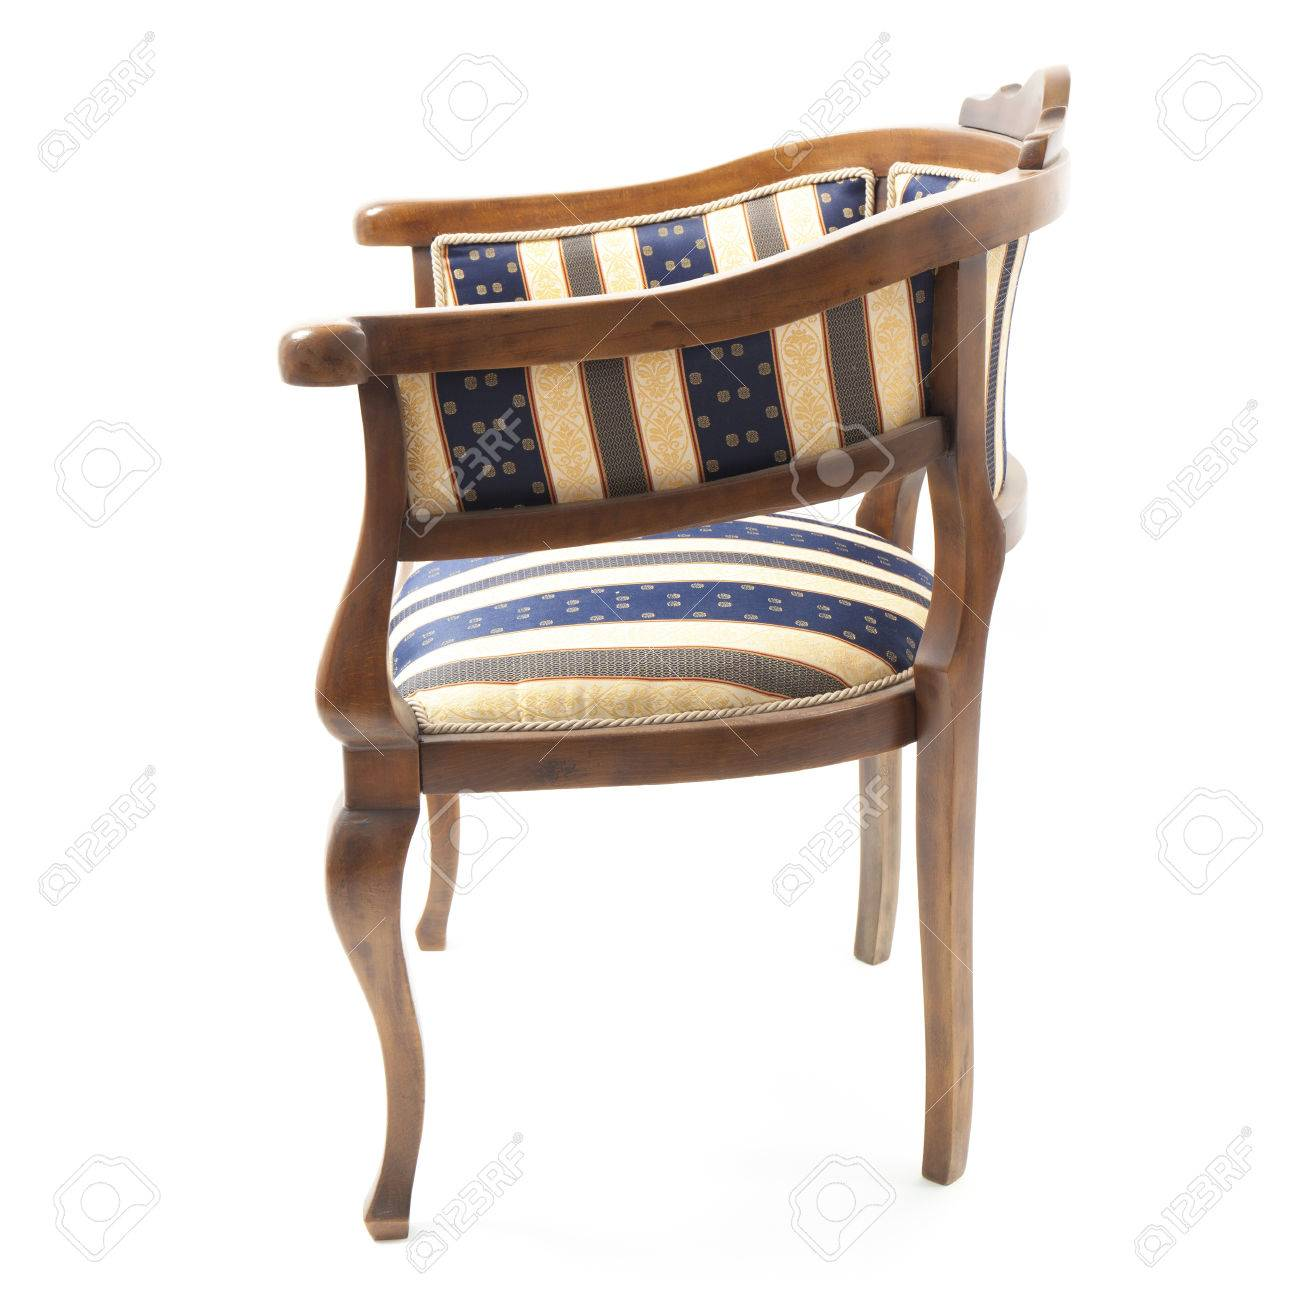 Retro Styled Armchair Upholstered In Striped Fabric. The Chair Is In The  Center Of A